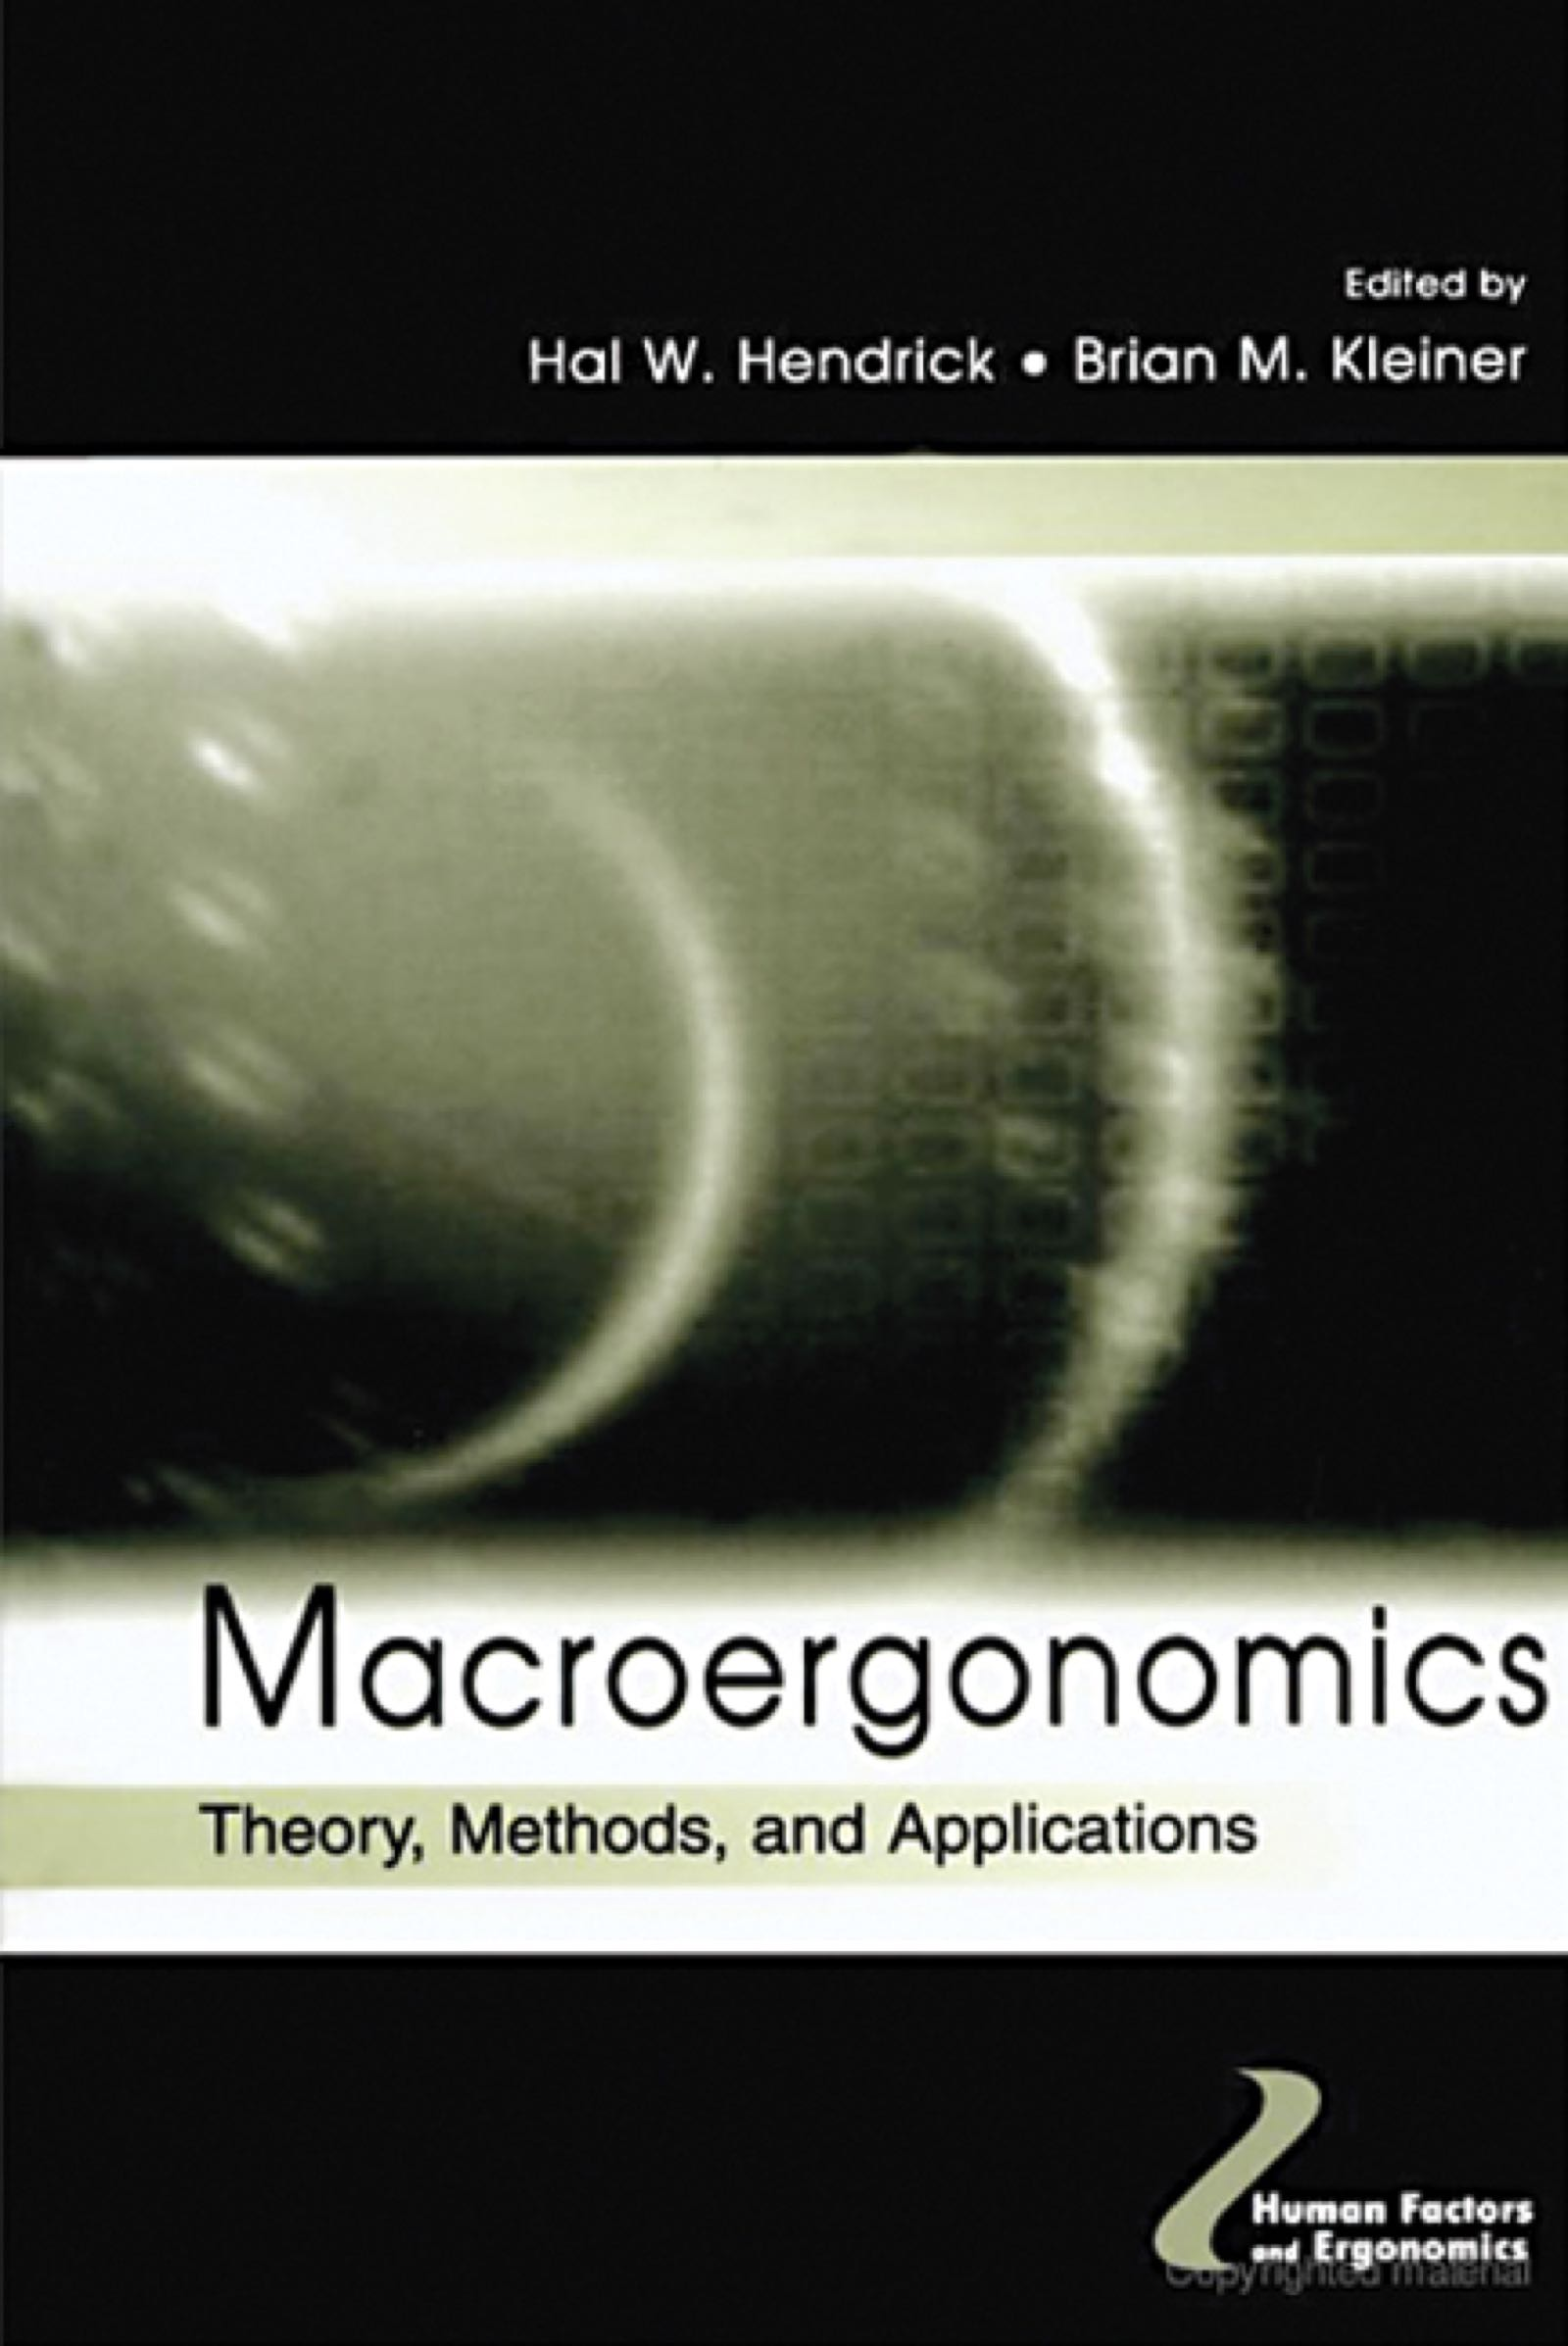 Macroergonomics: Theory, Methods, and Applications book cover